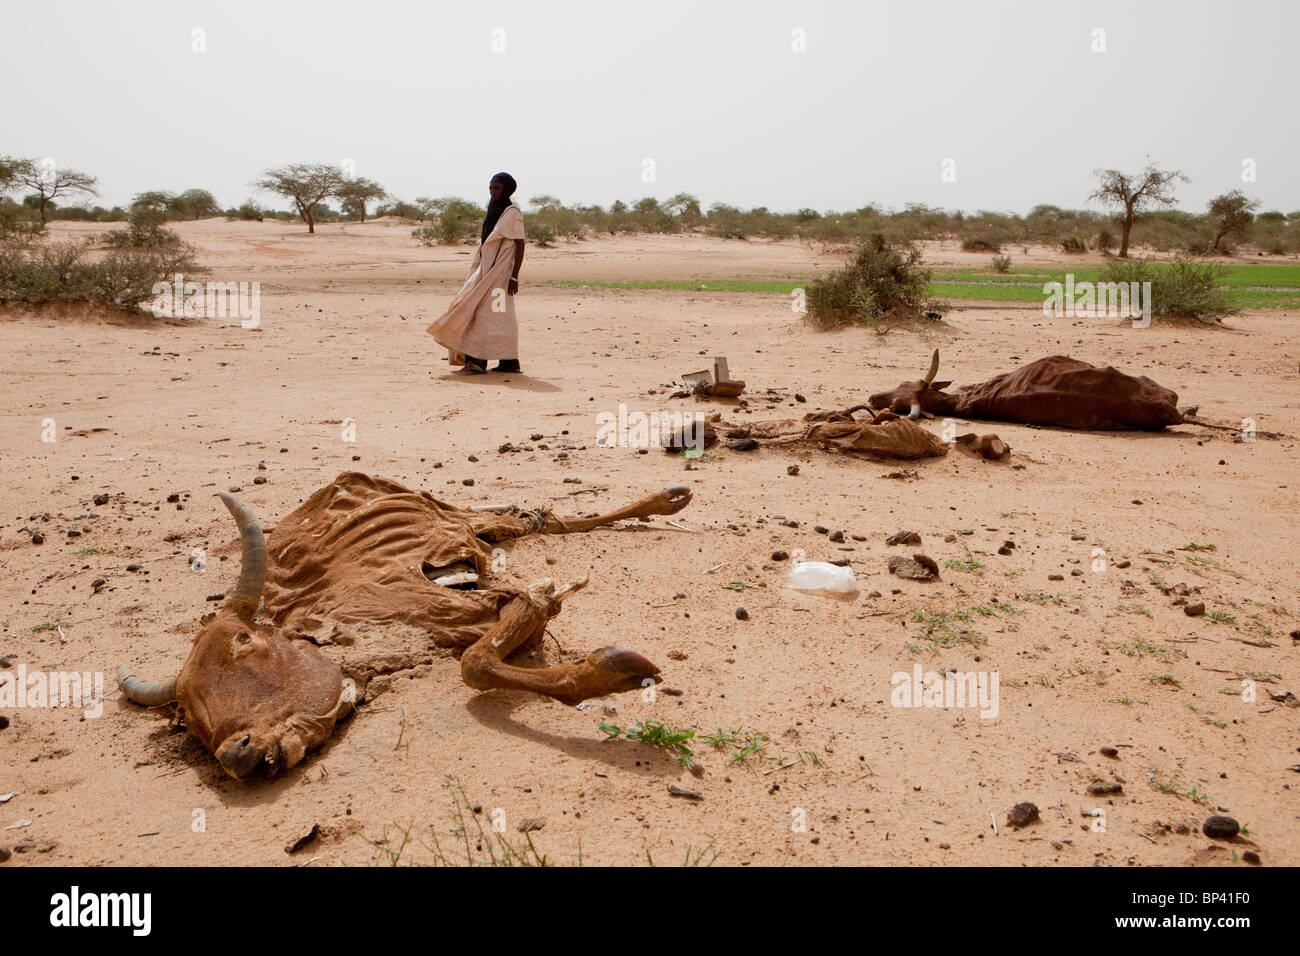 ABALA, NIGER, 30th July 2010: Tribal chief Bubacar Maman, 70, walks past local livestock  wiped out by drought. - Stock Image